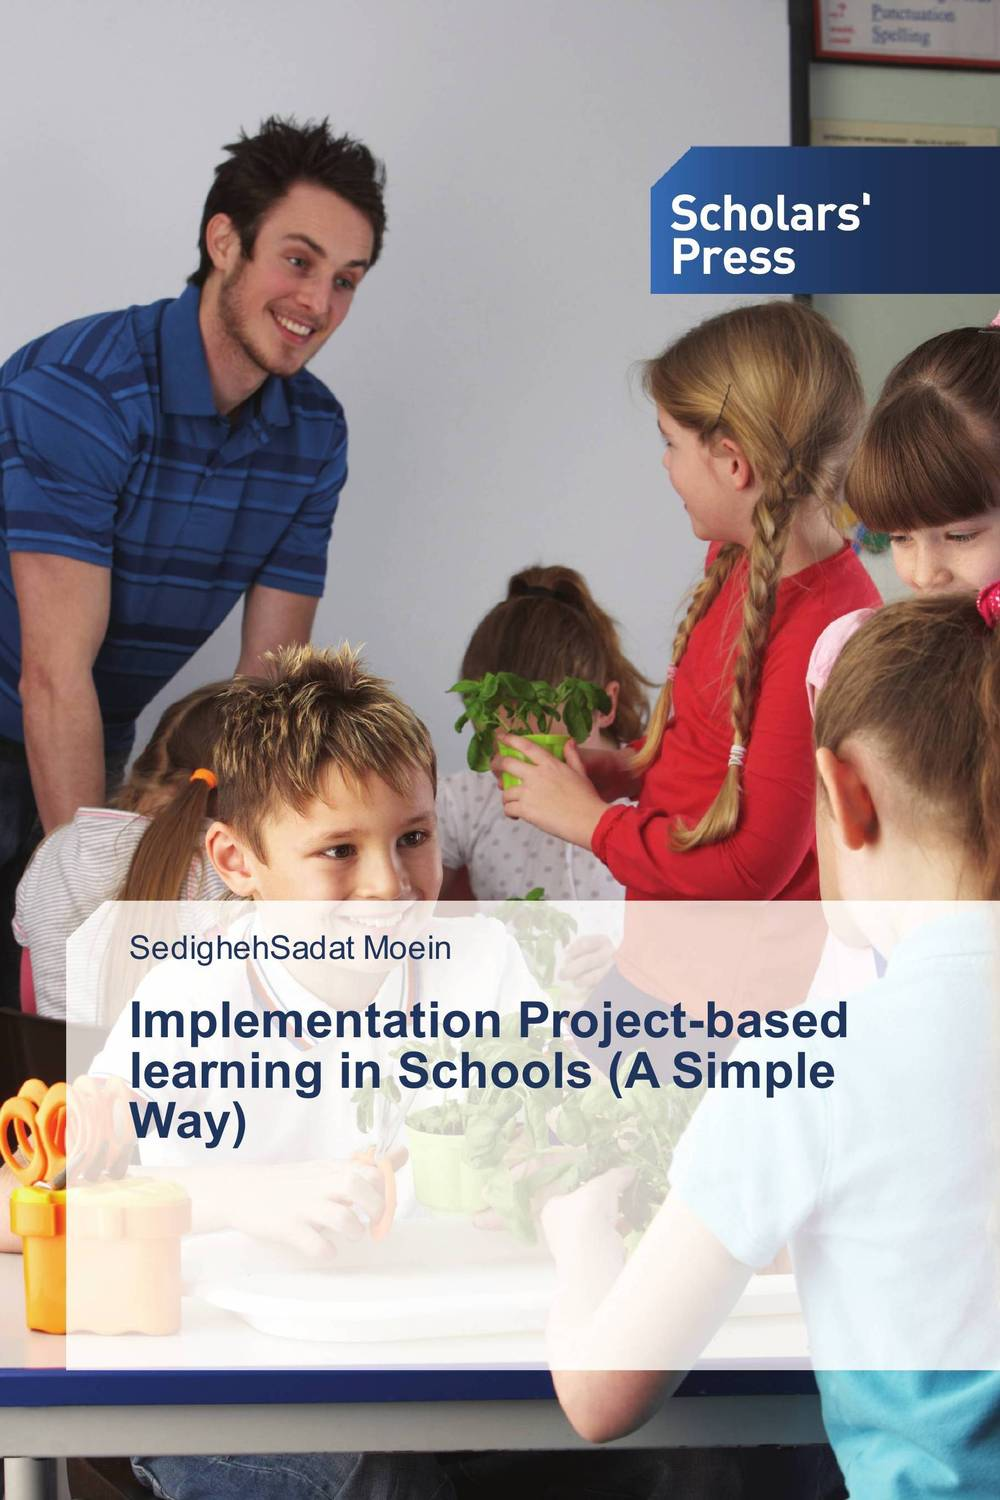 Implementation Project-based learning in Schools (A Simple Way) peter stone layered learning in multiagent systems – a winning approach to robotic soccer